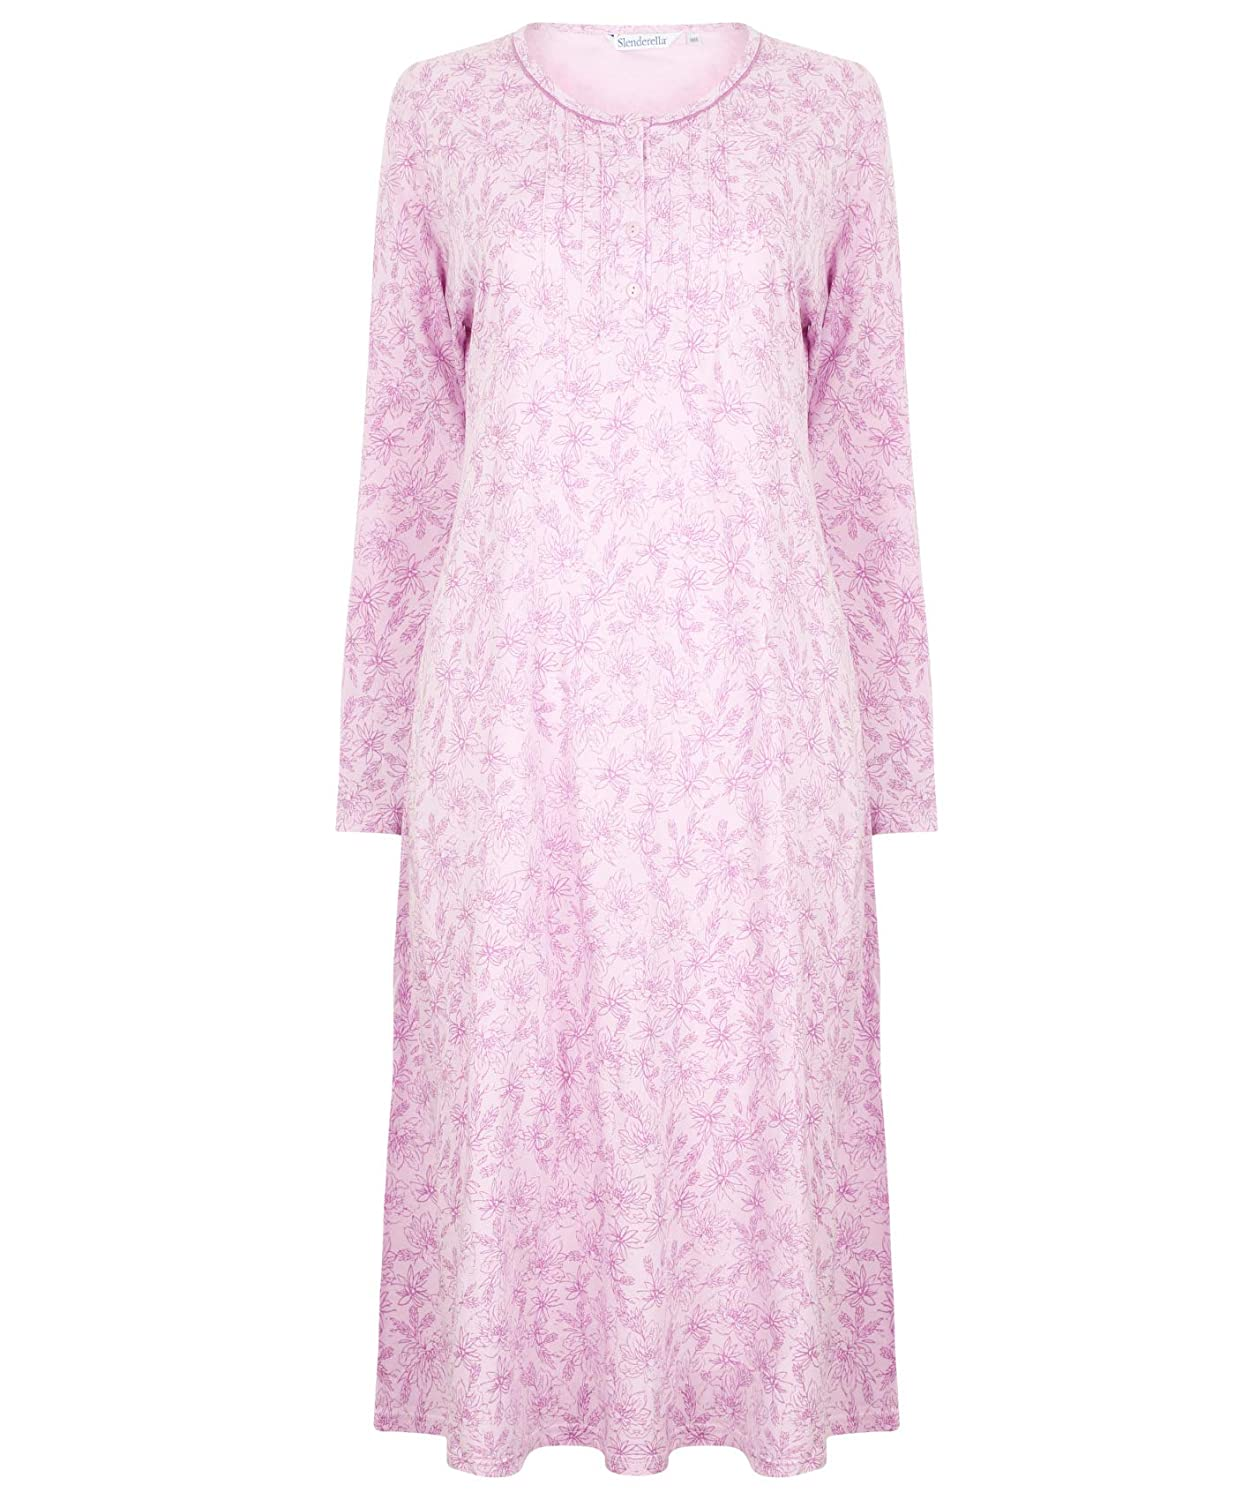 Slenderella Ladies Floral Meadow Jersey Cotton Nightdress Long Sleeved Nightie (3 Colours)